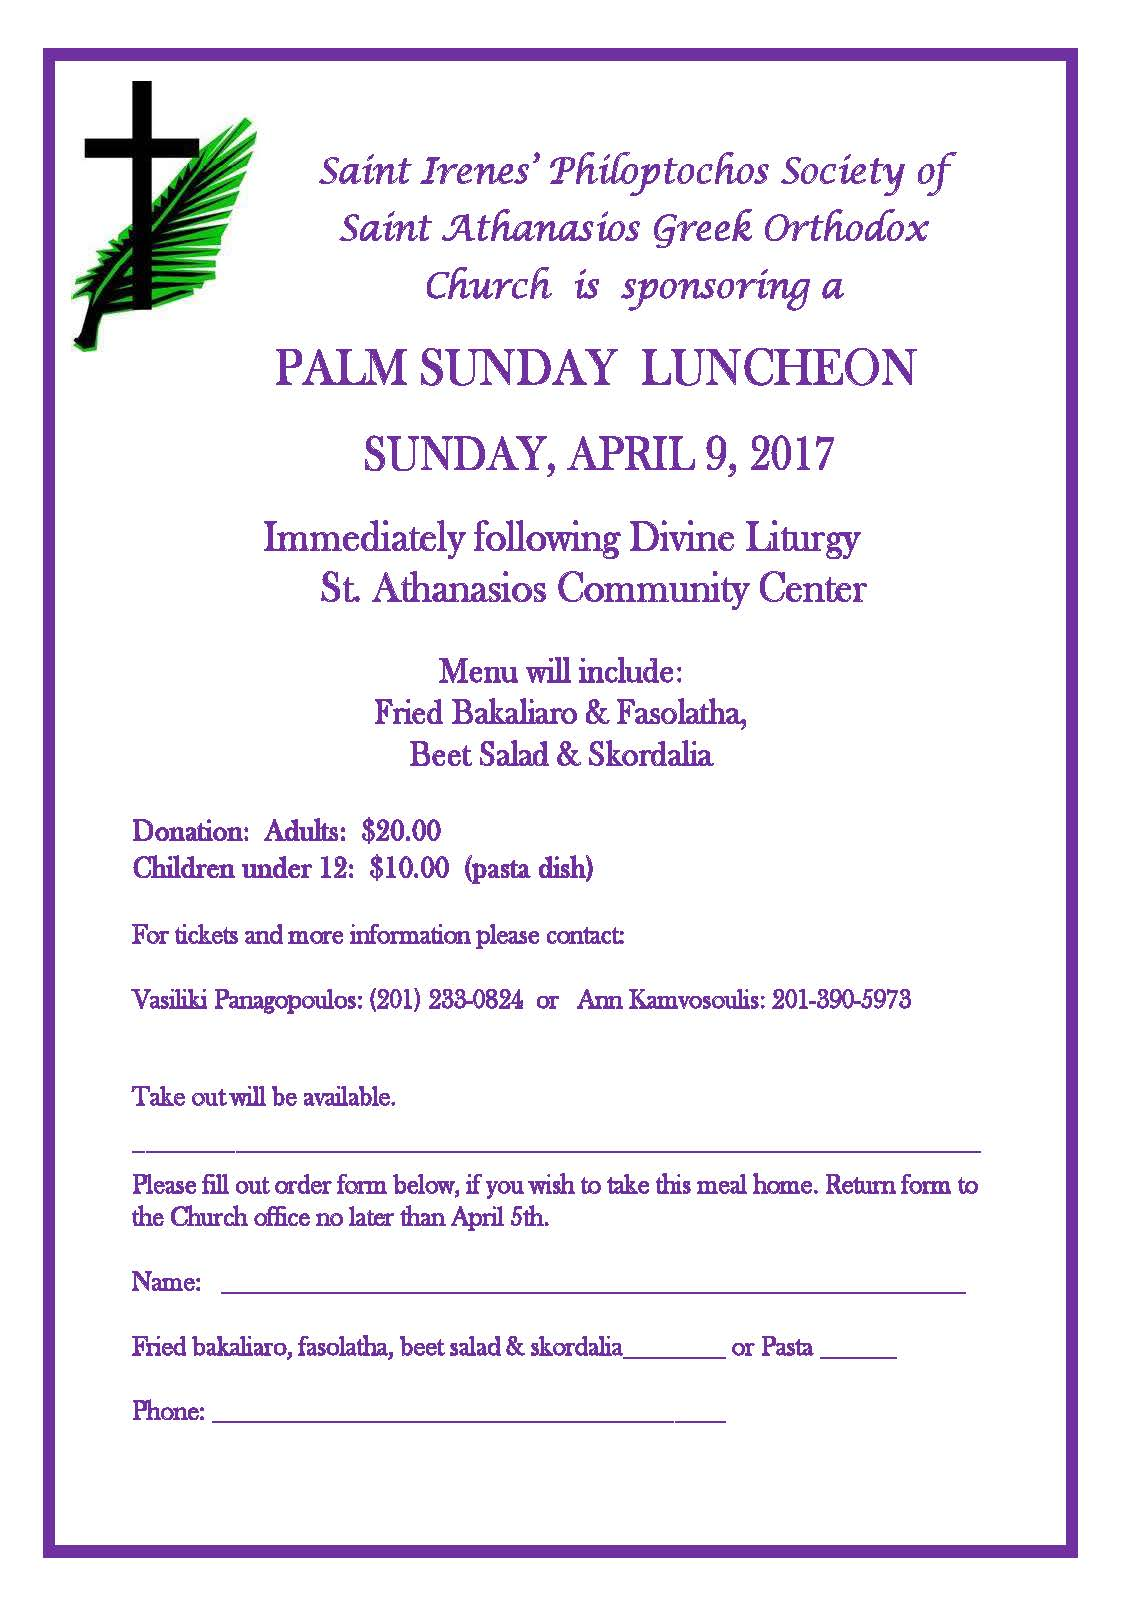 2017 Palm Sunday Luncheon